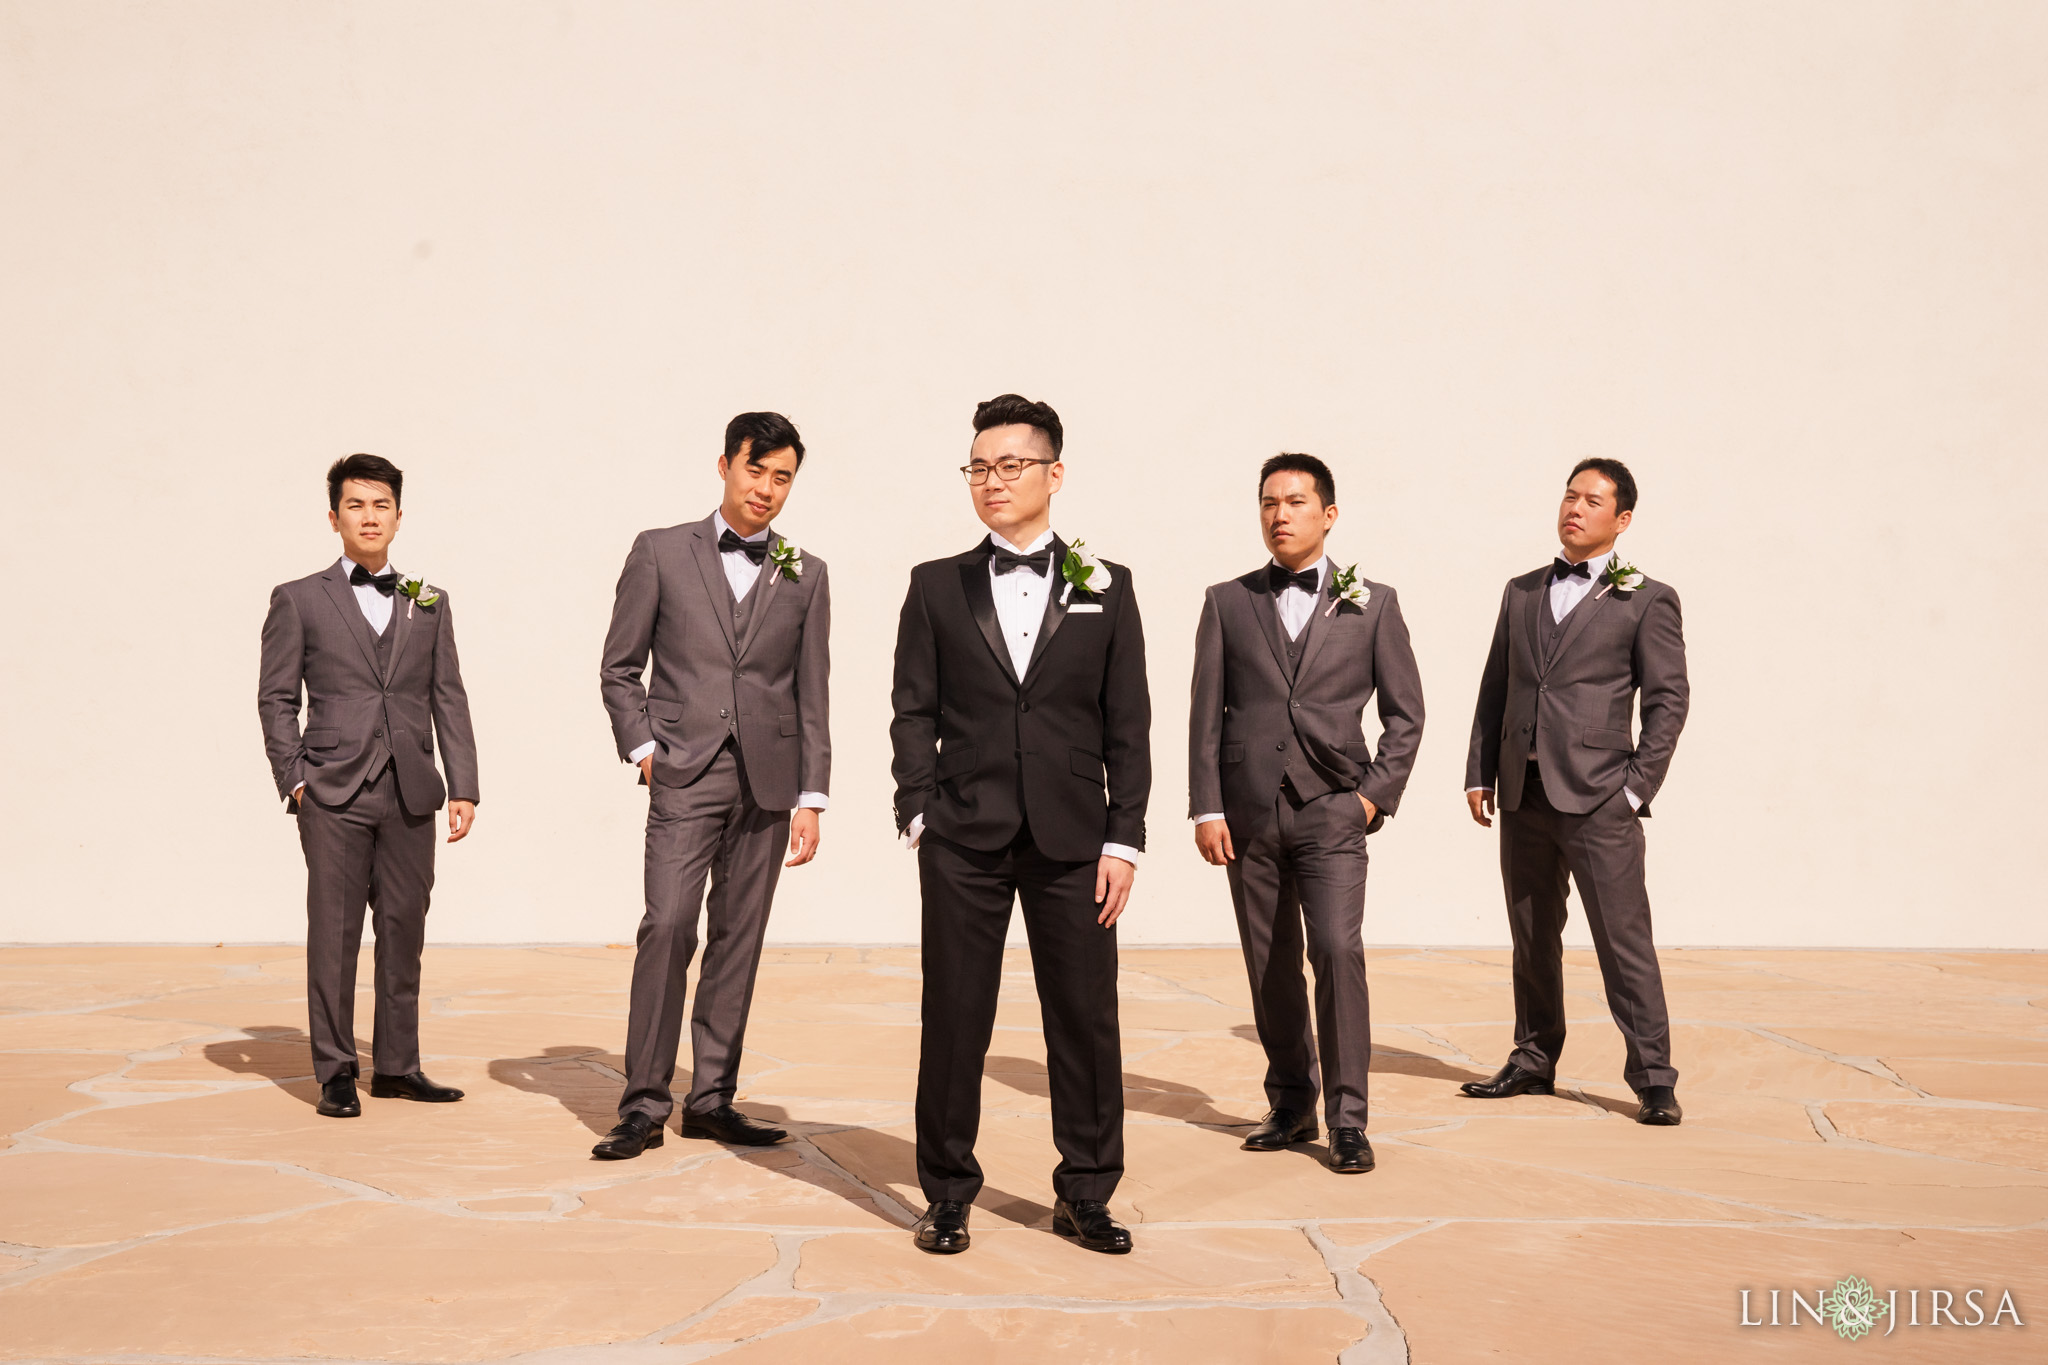 17 segerstrom center for the arts costa mesa wedding photography